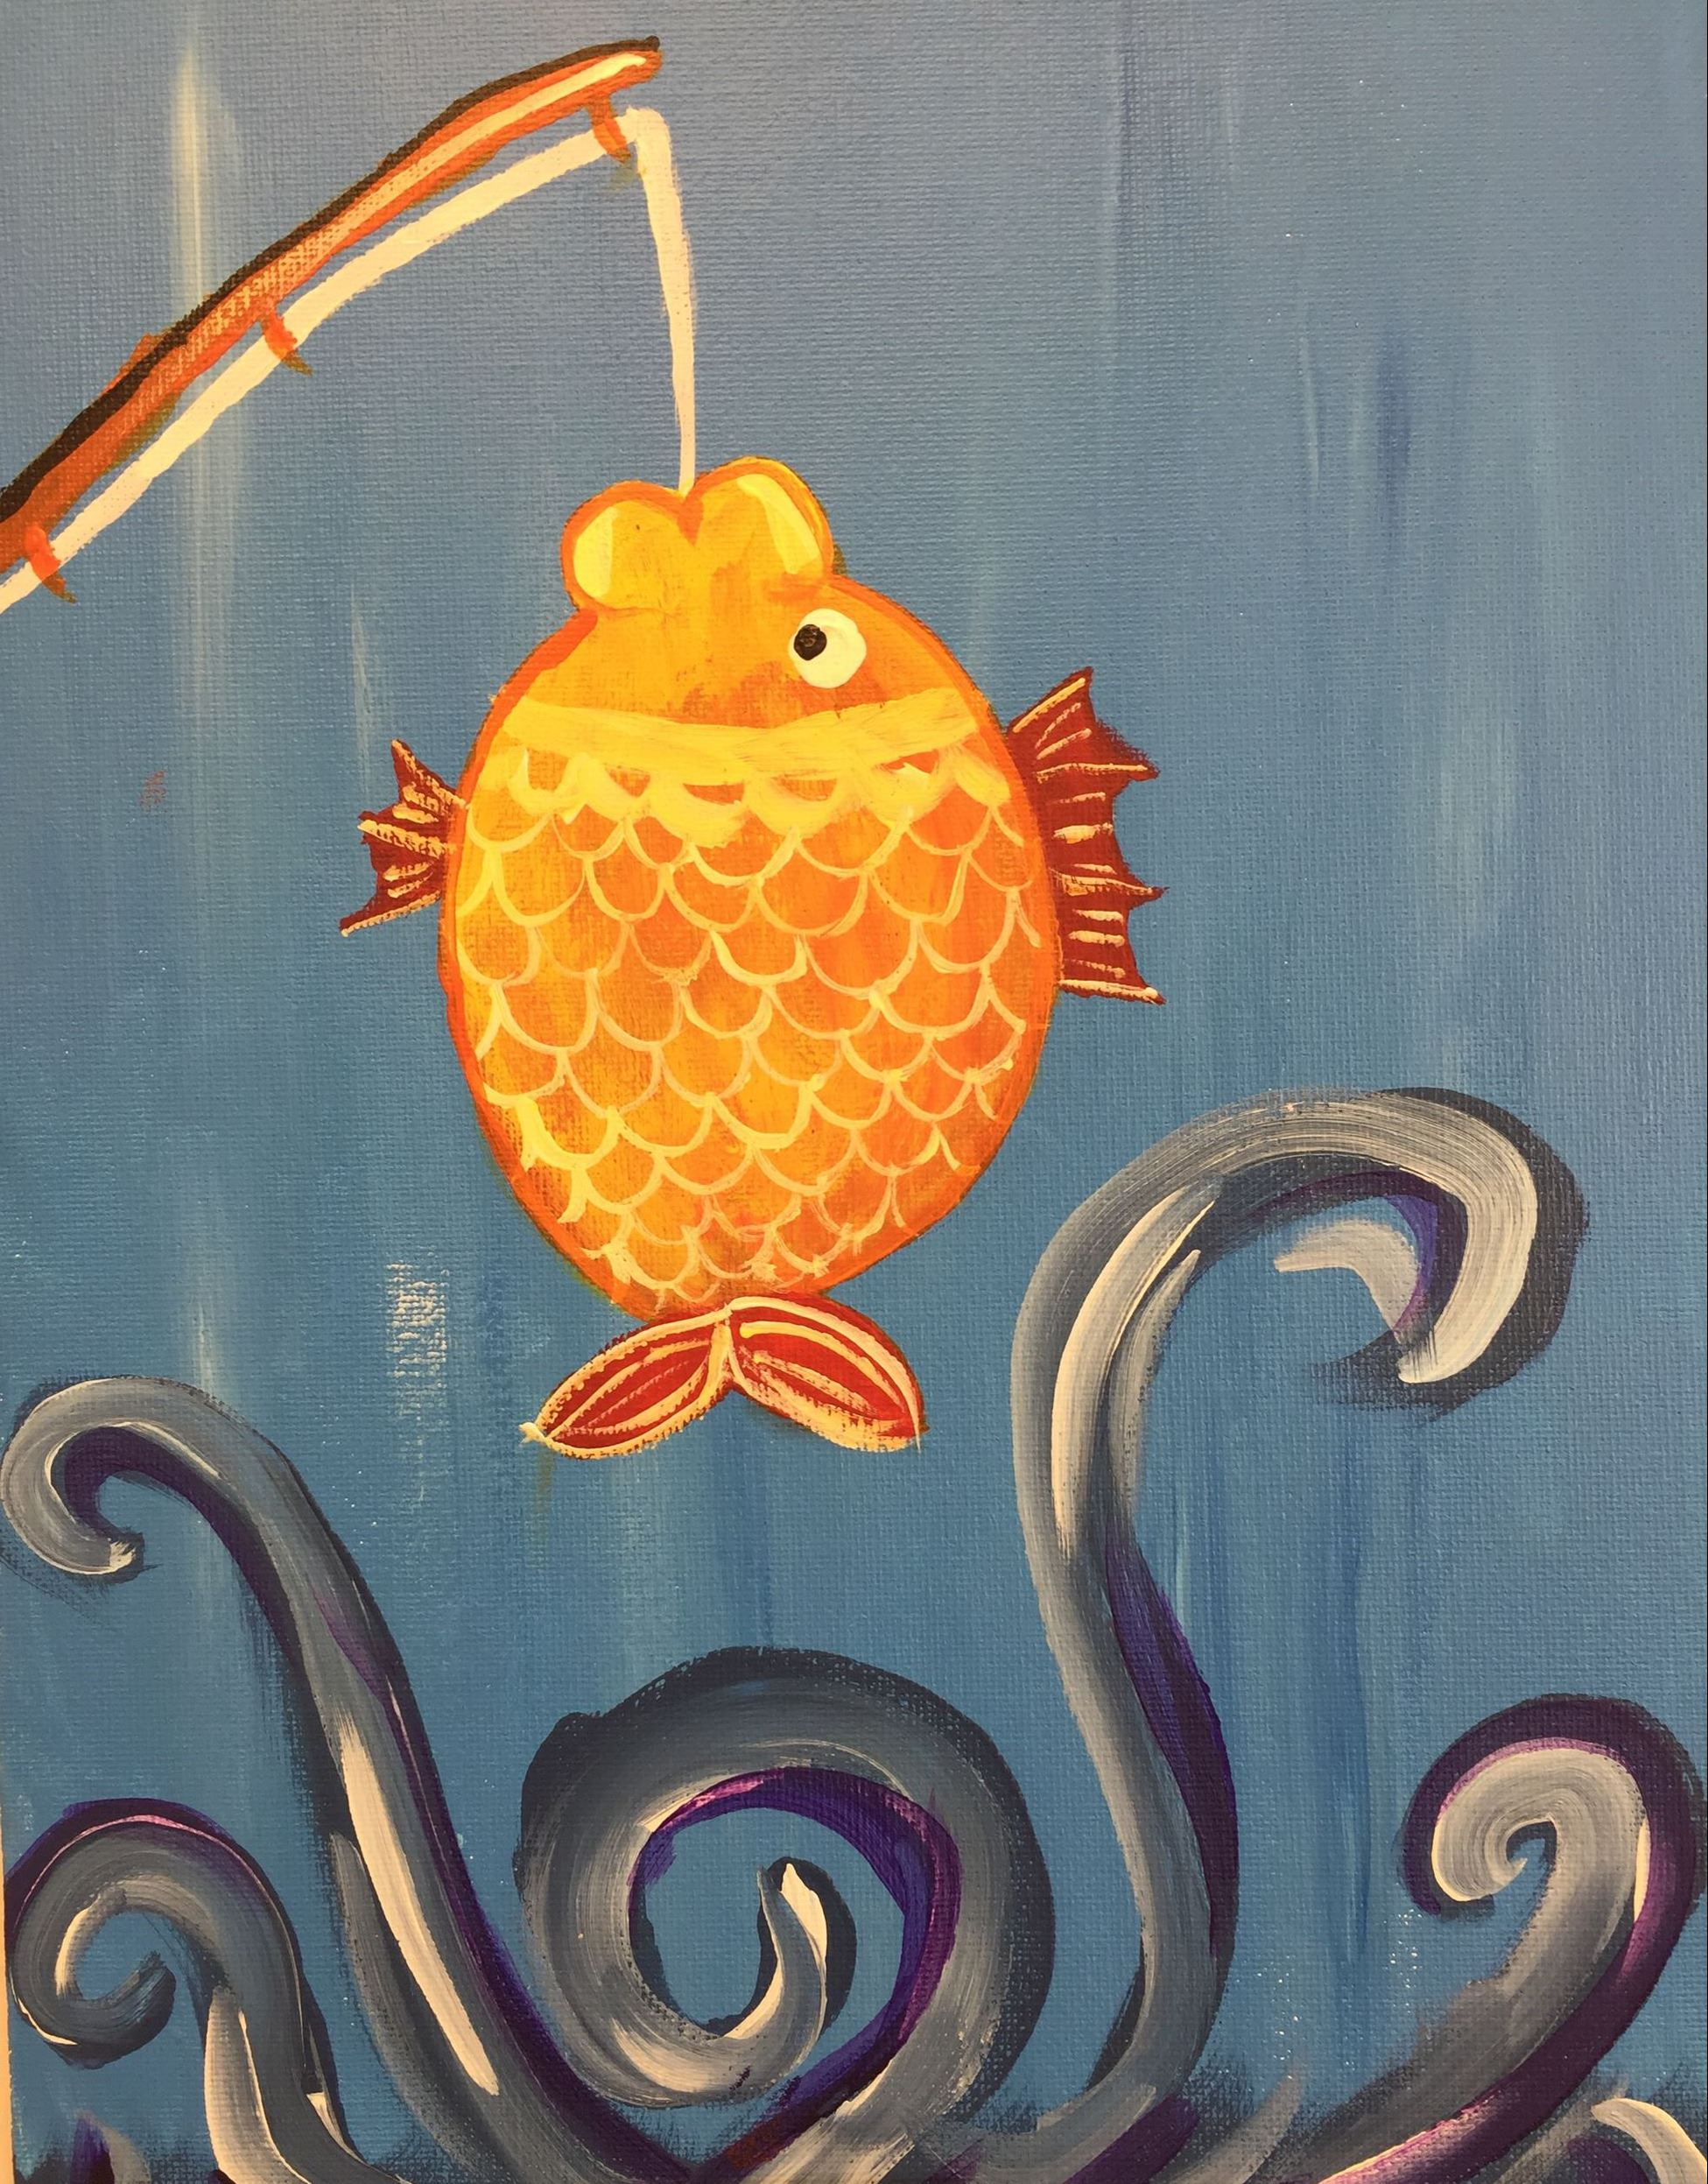 May Pictures - Fish on a rod